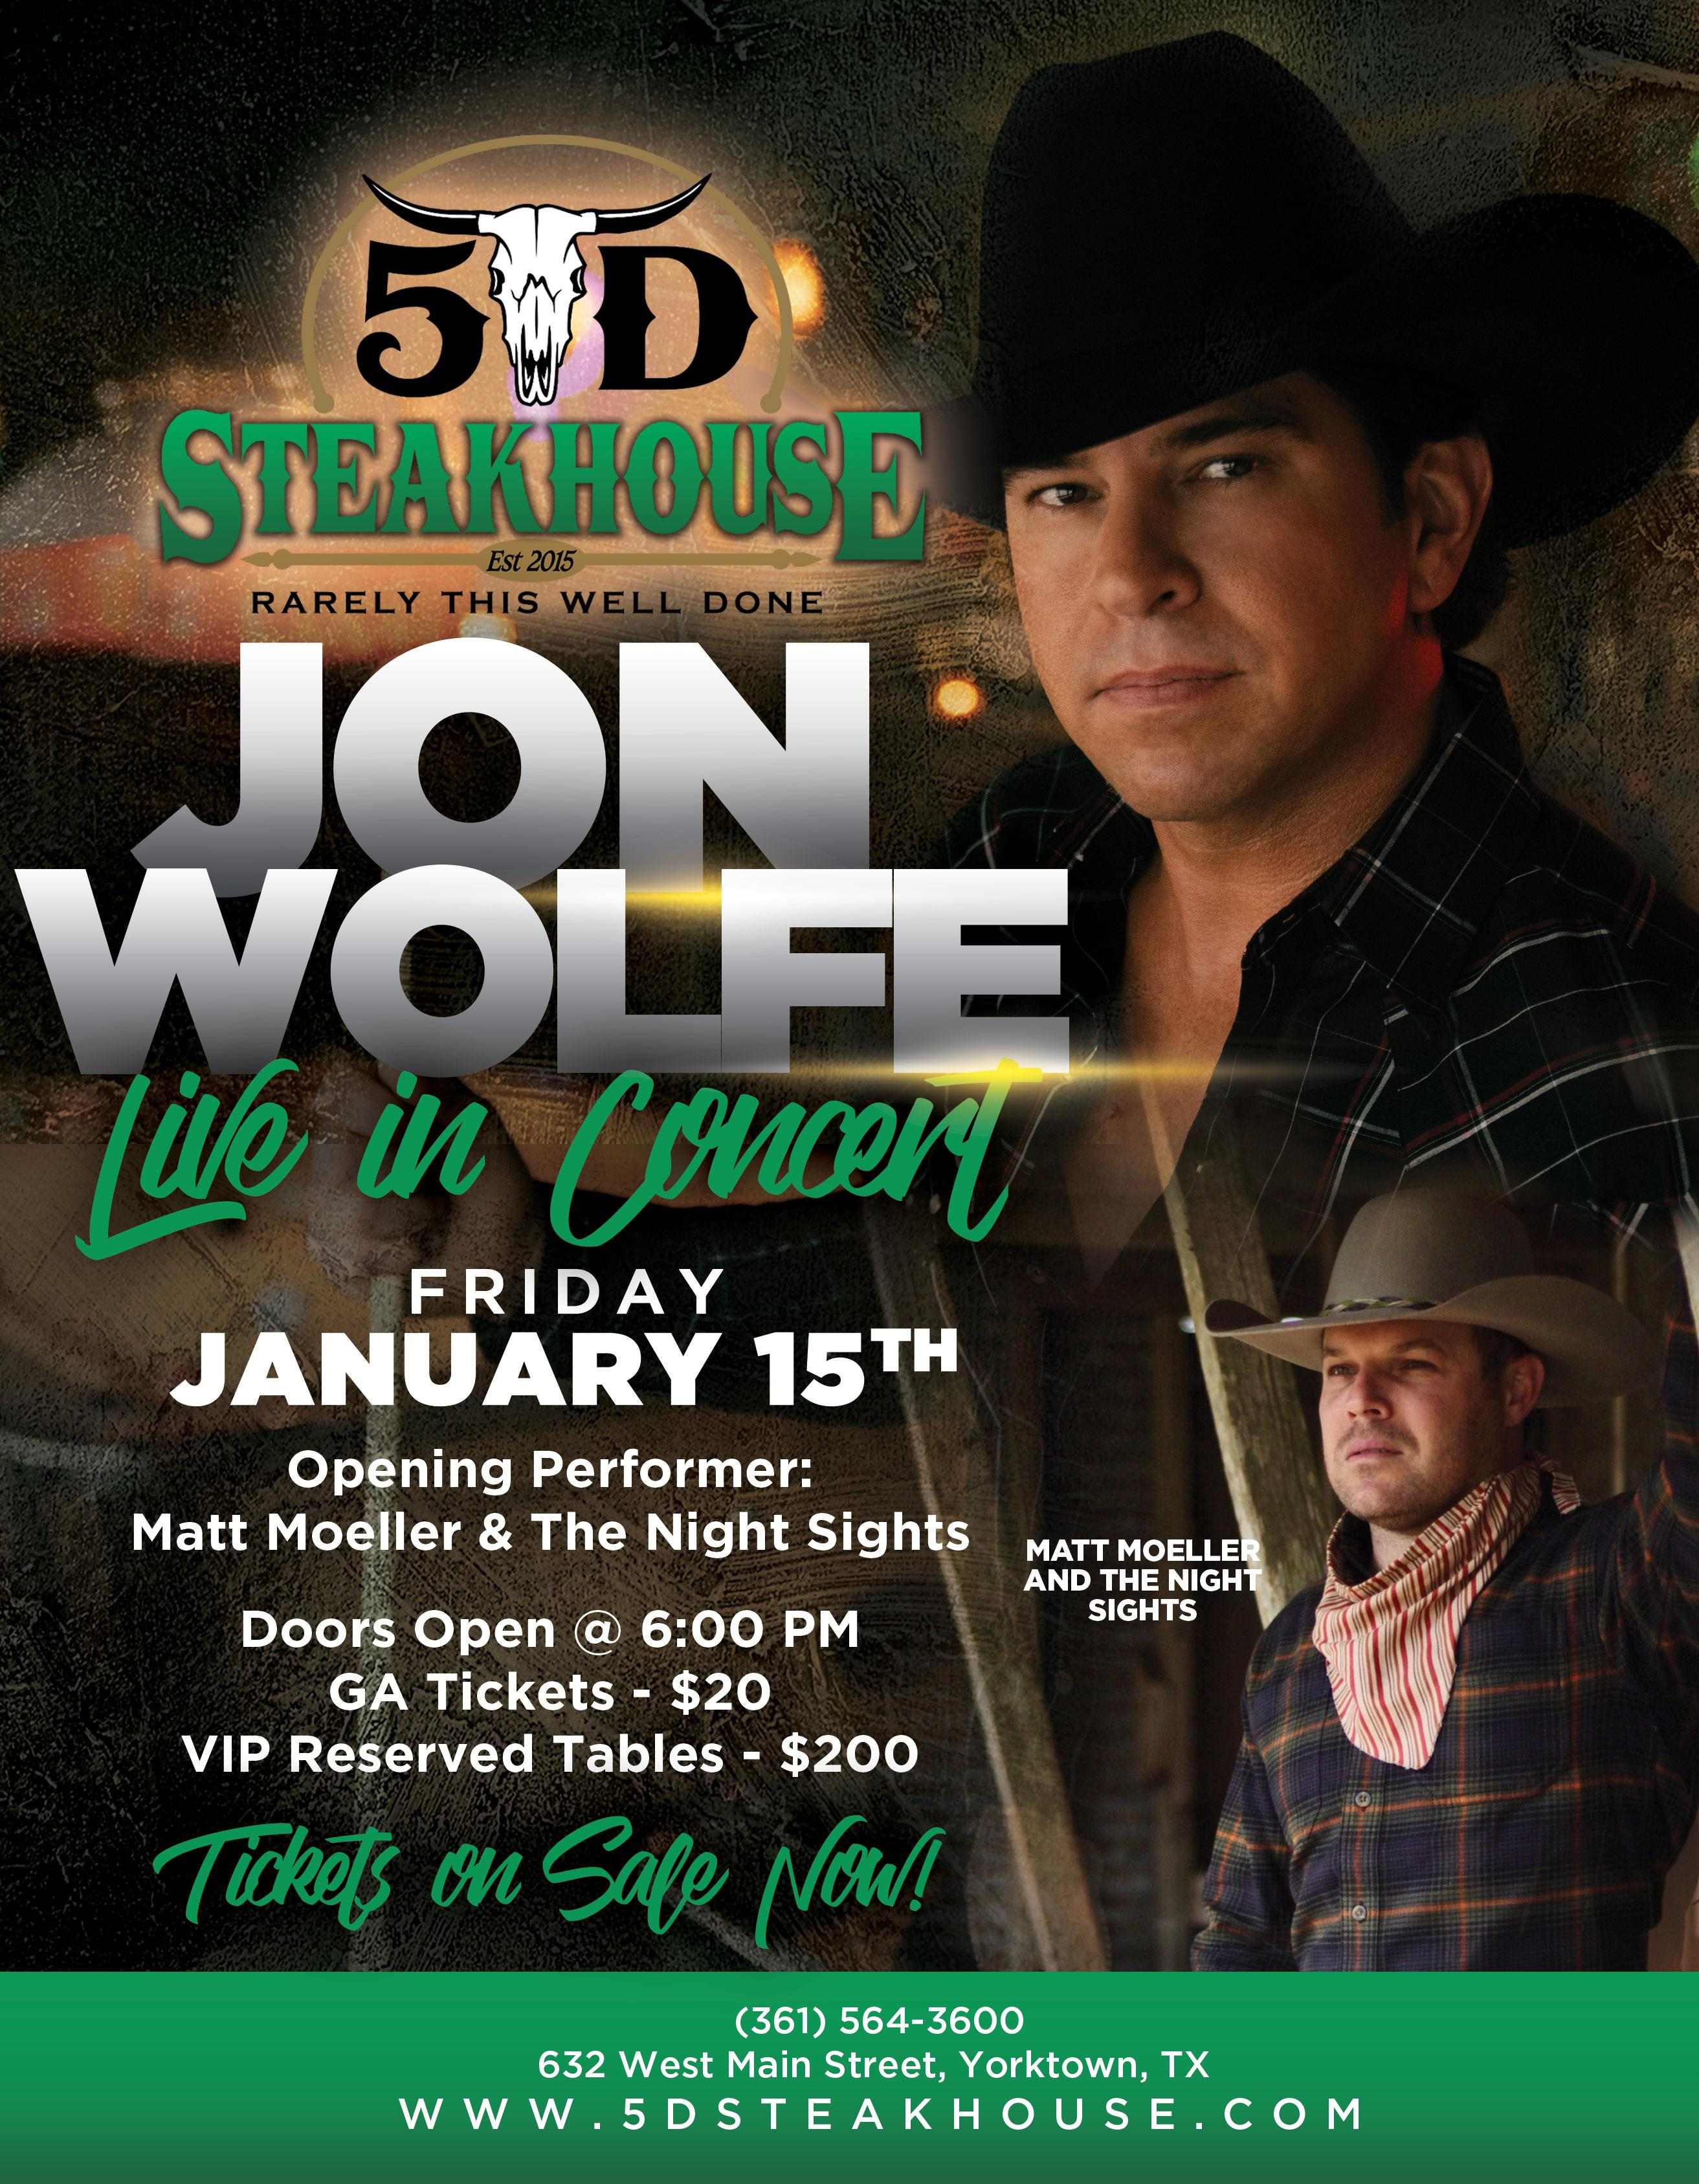 jon wolfe line in concert friday, january 15th. openeing performer: matt moeller & the night sighs. doors open @ 6:00 PM. GA tickets $20. VIP reserved tables $200. tickets on sale now!